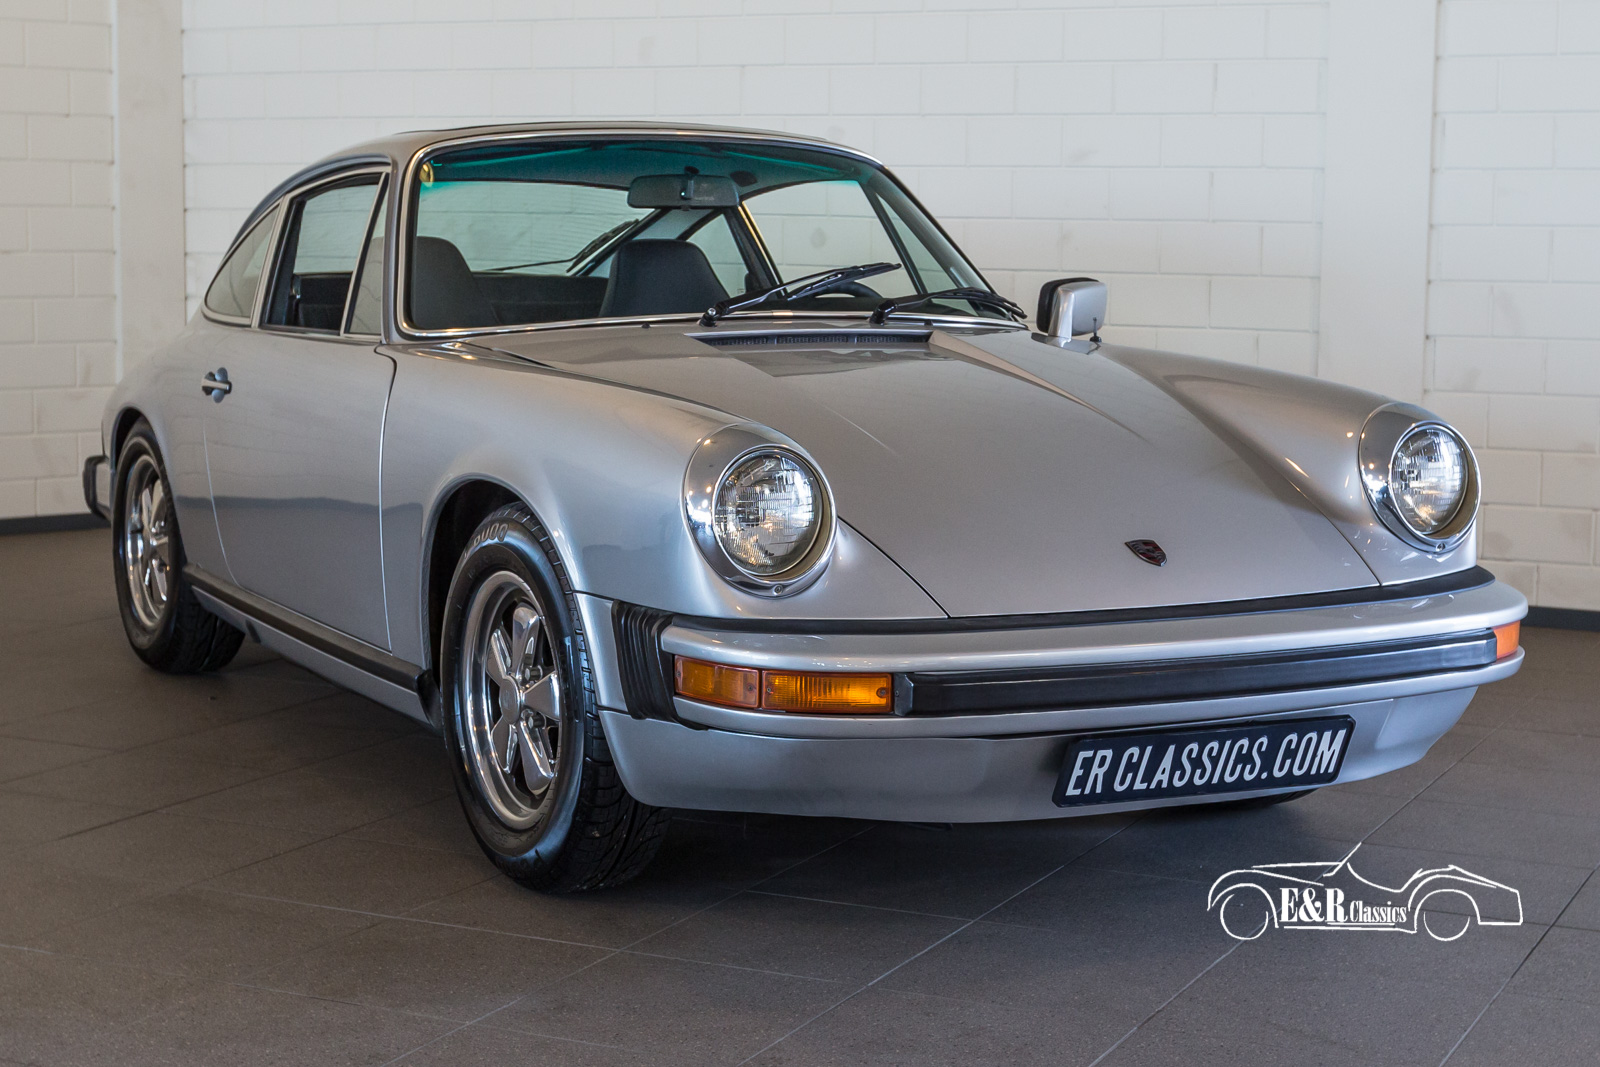 porsche 911 1974 1977 for sale at e r classic cars. Black Bedroom Furniture Sets. Home Design Ideas